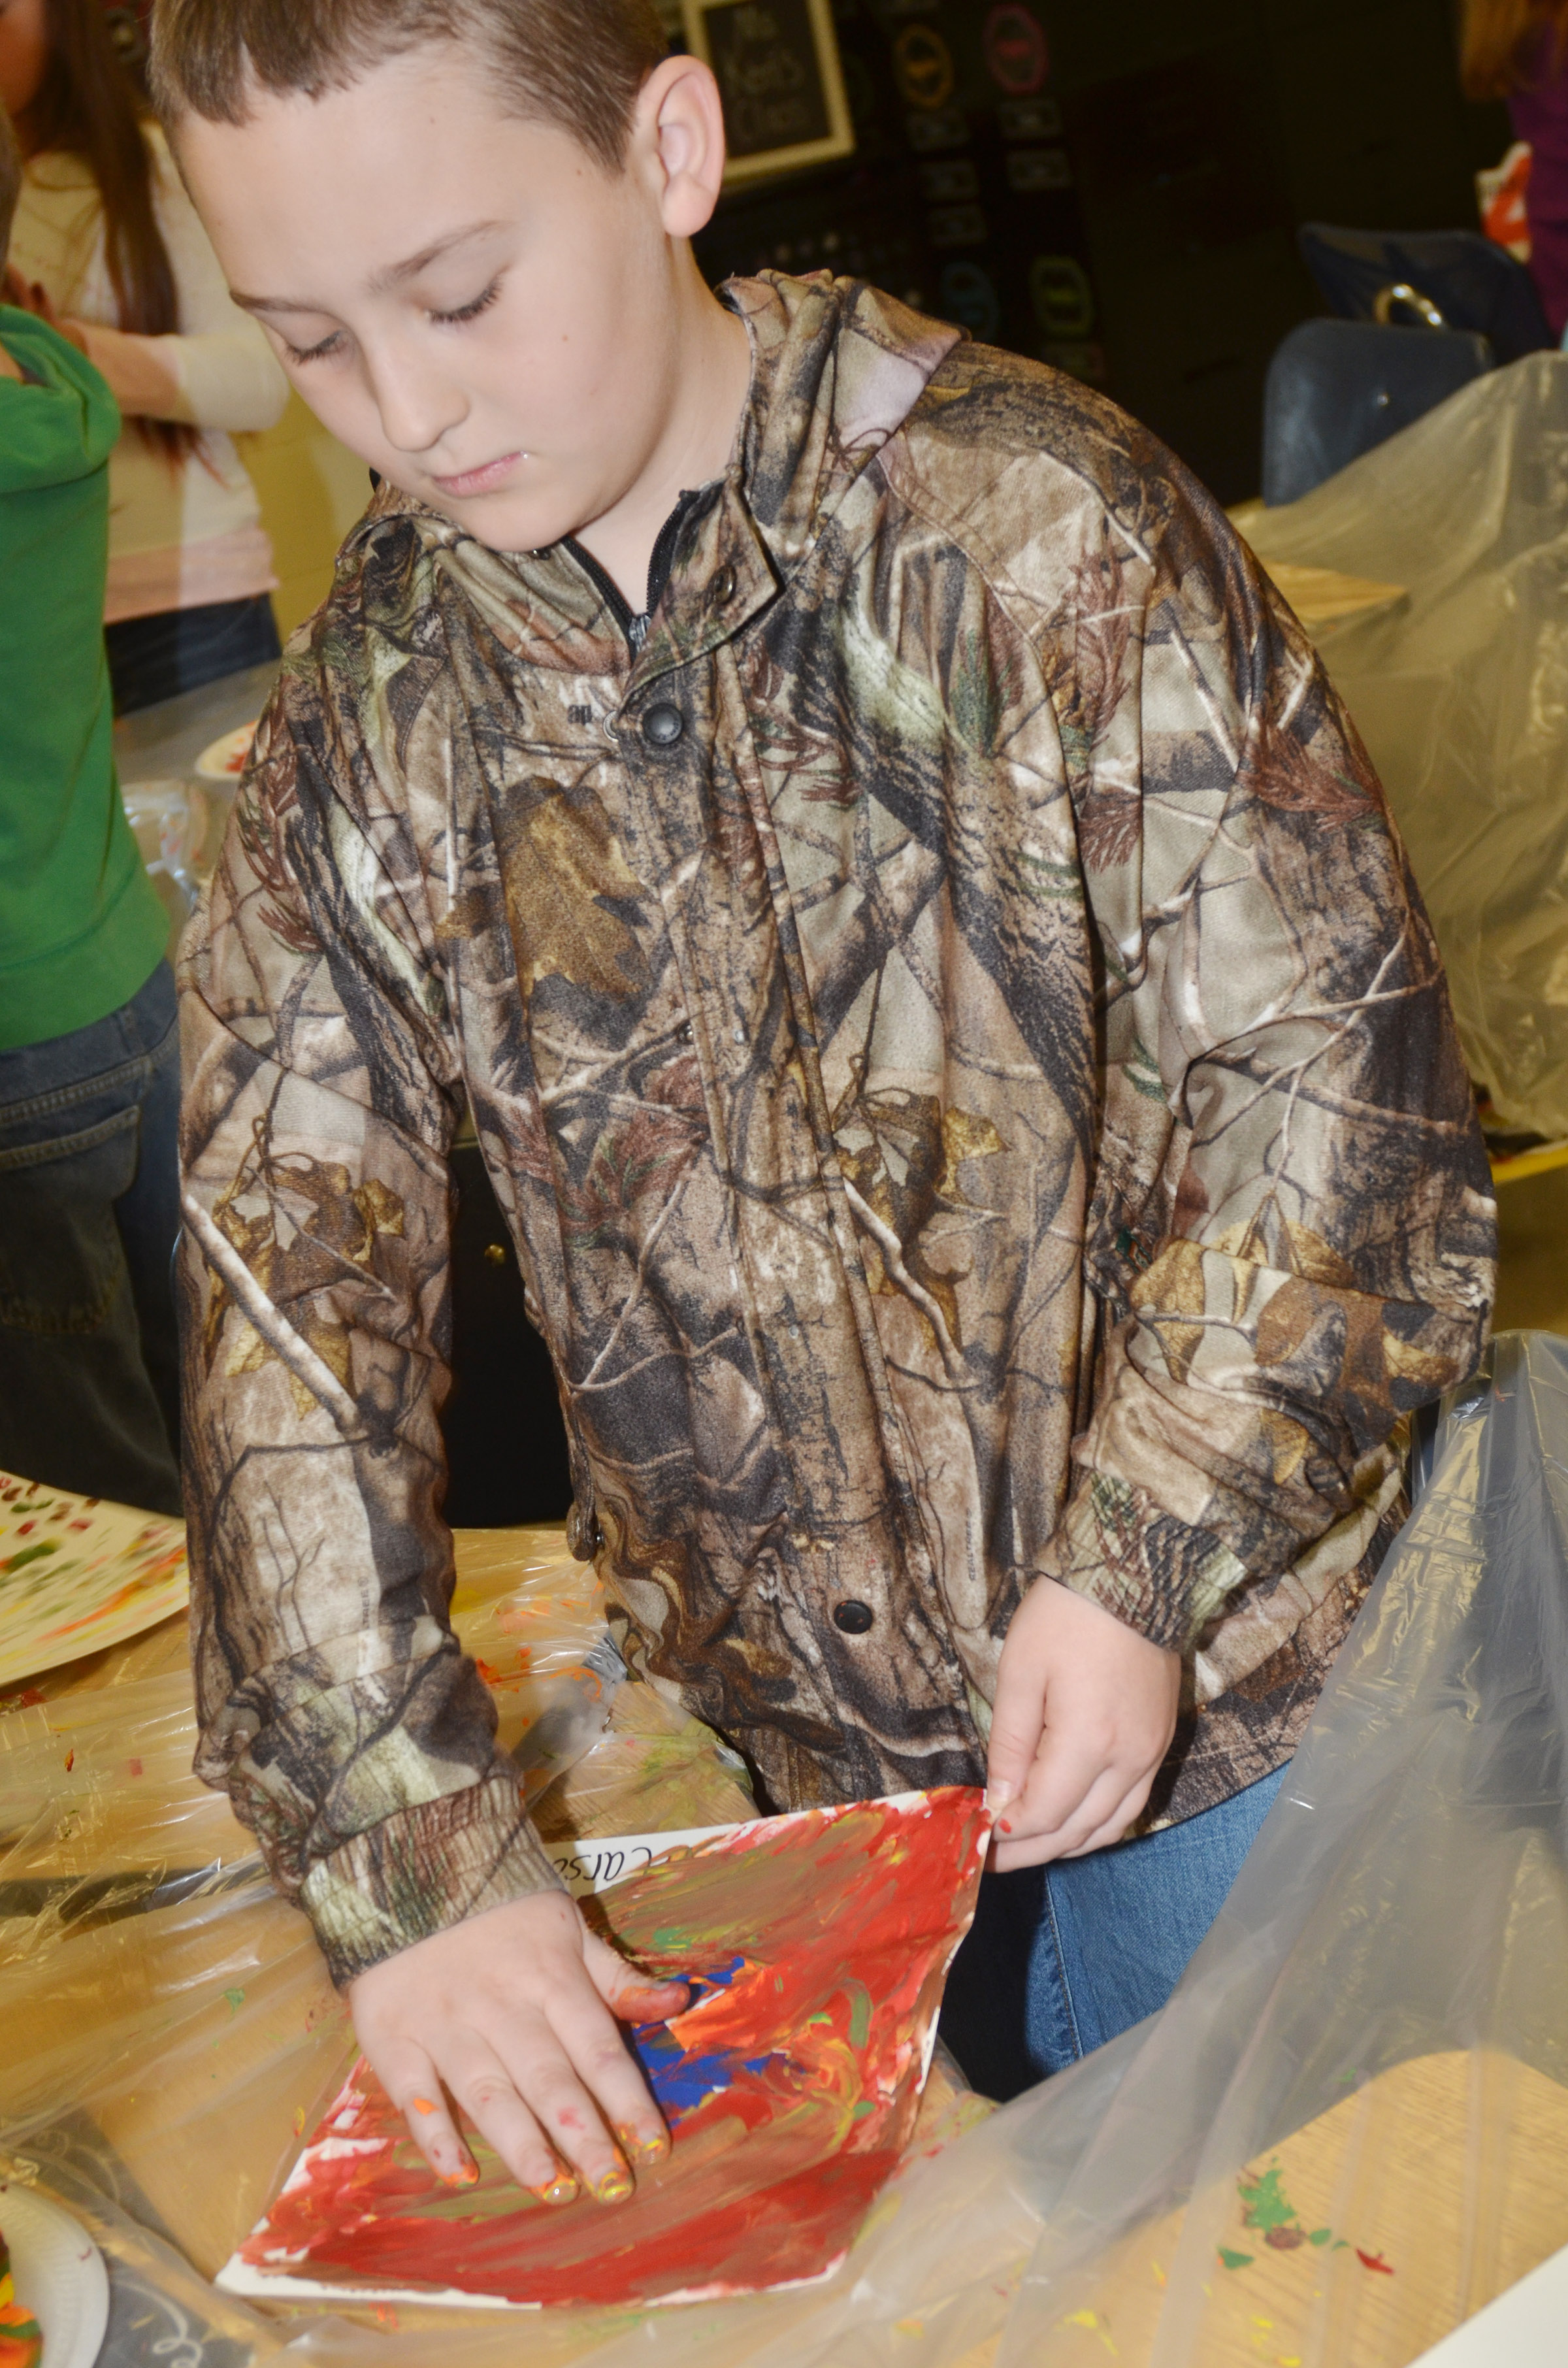 CES third-grader Carson Ford paints with his fingers.